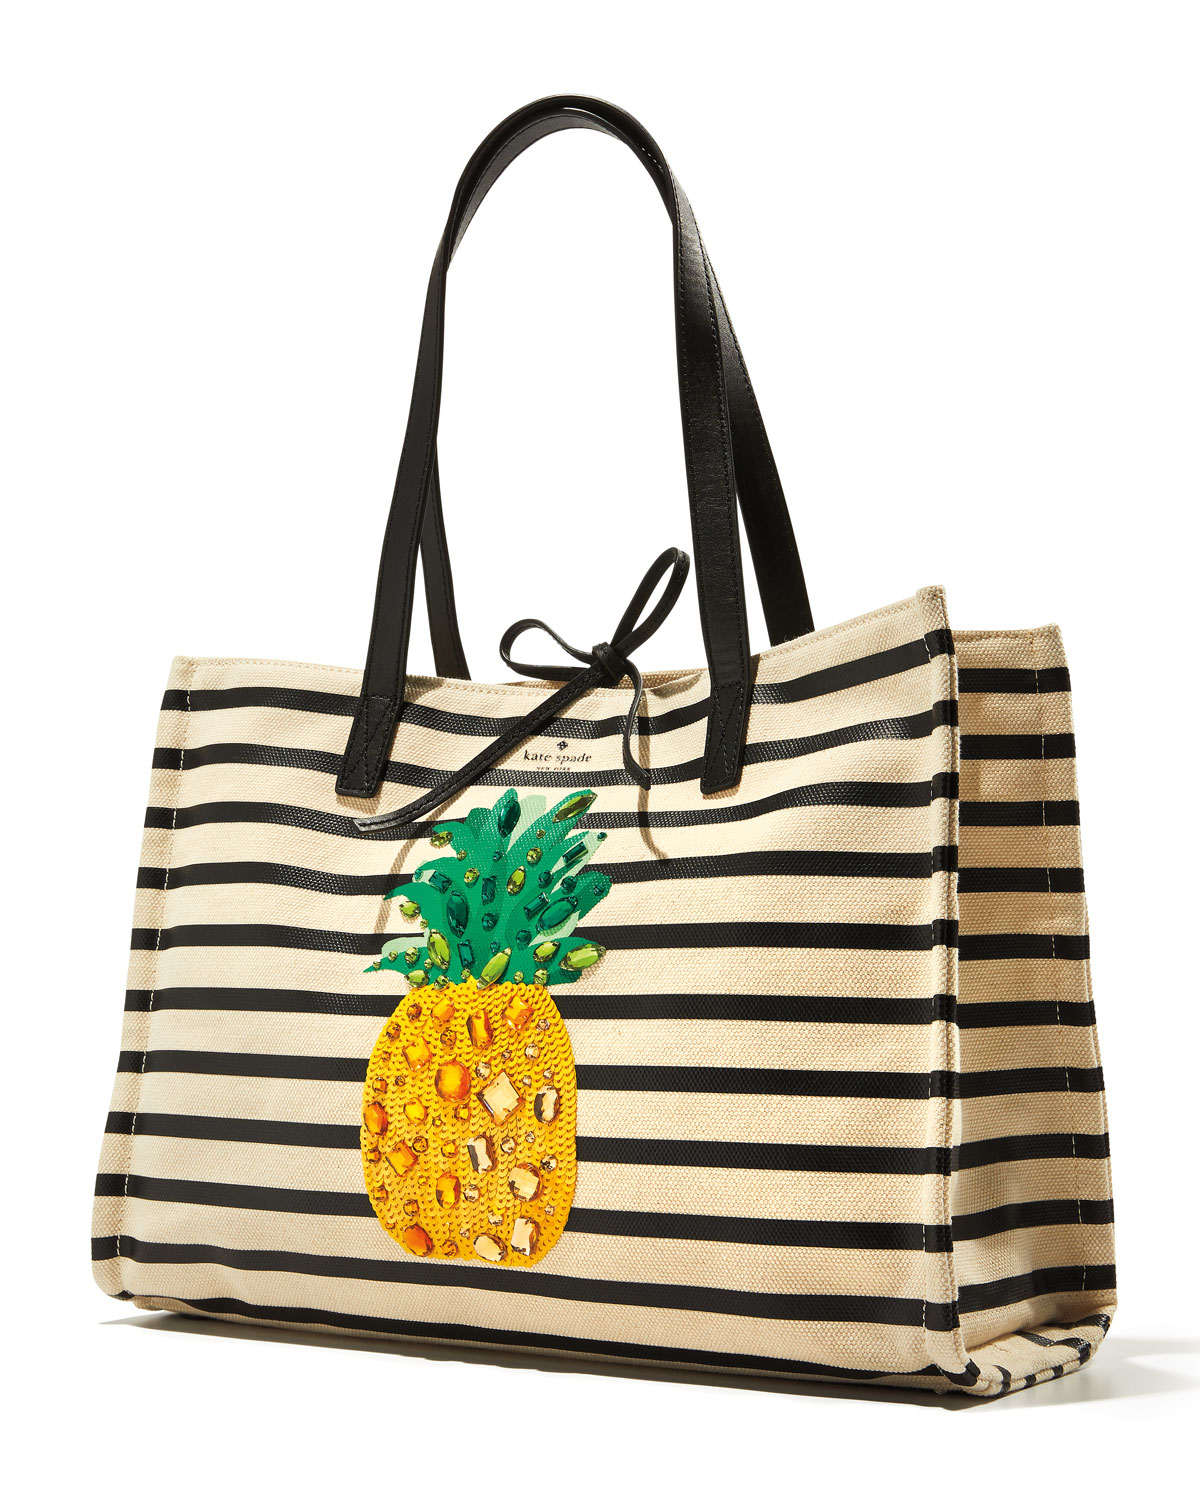 848a8d545 kate spade new york by the pool canvas pineapple tote bag | Neiman Marcus